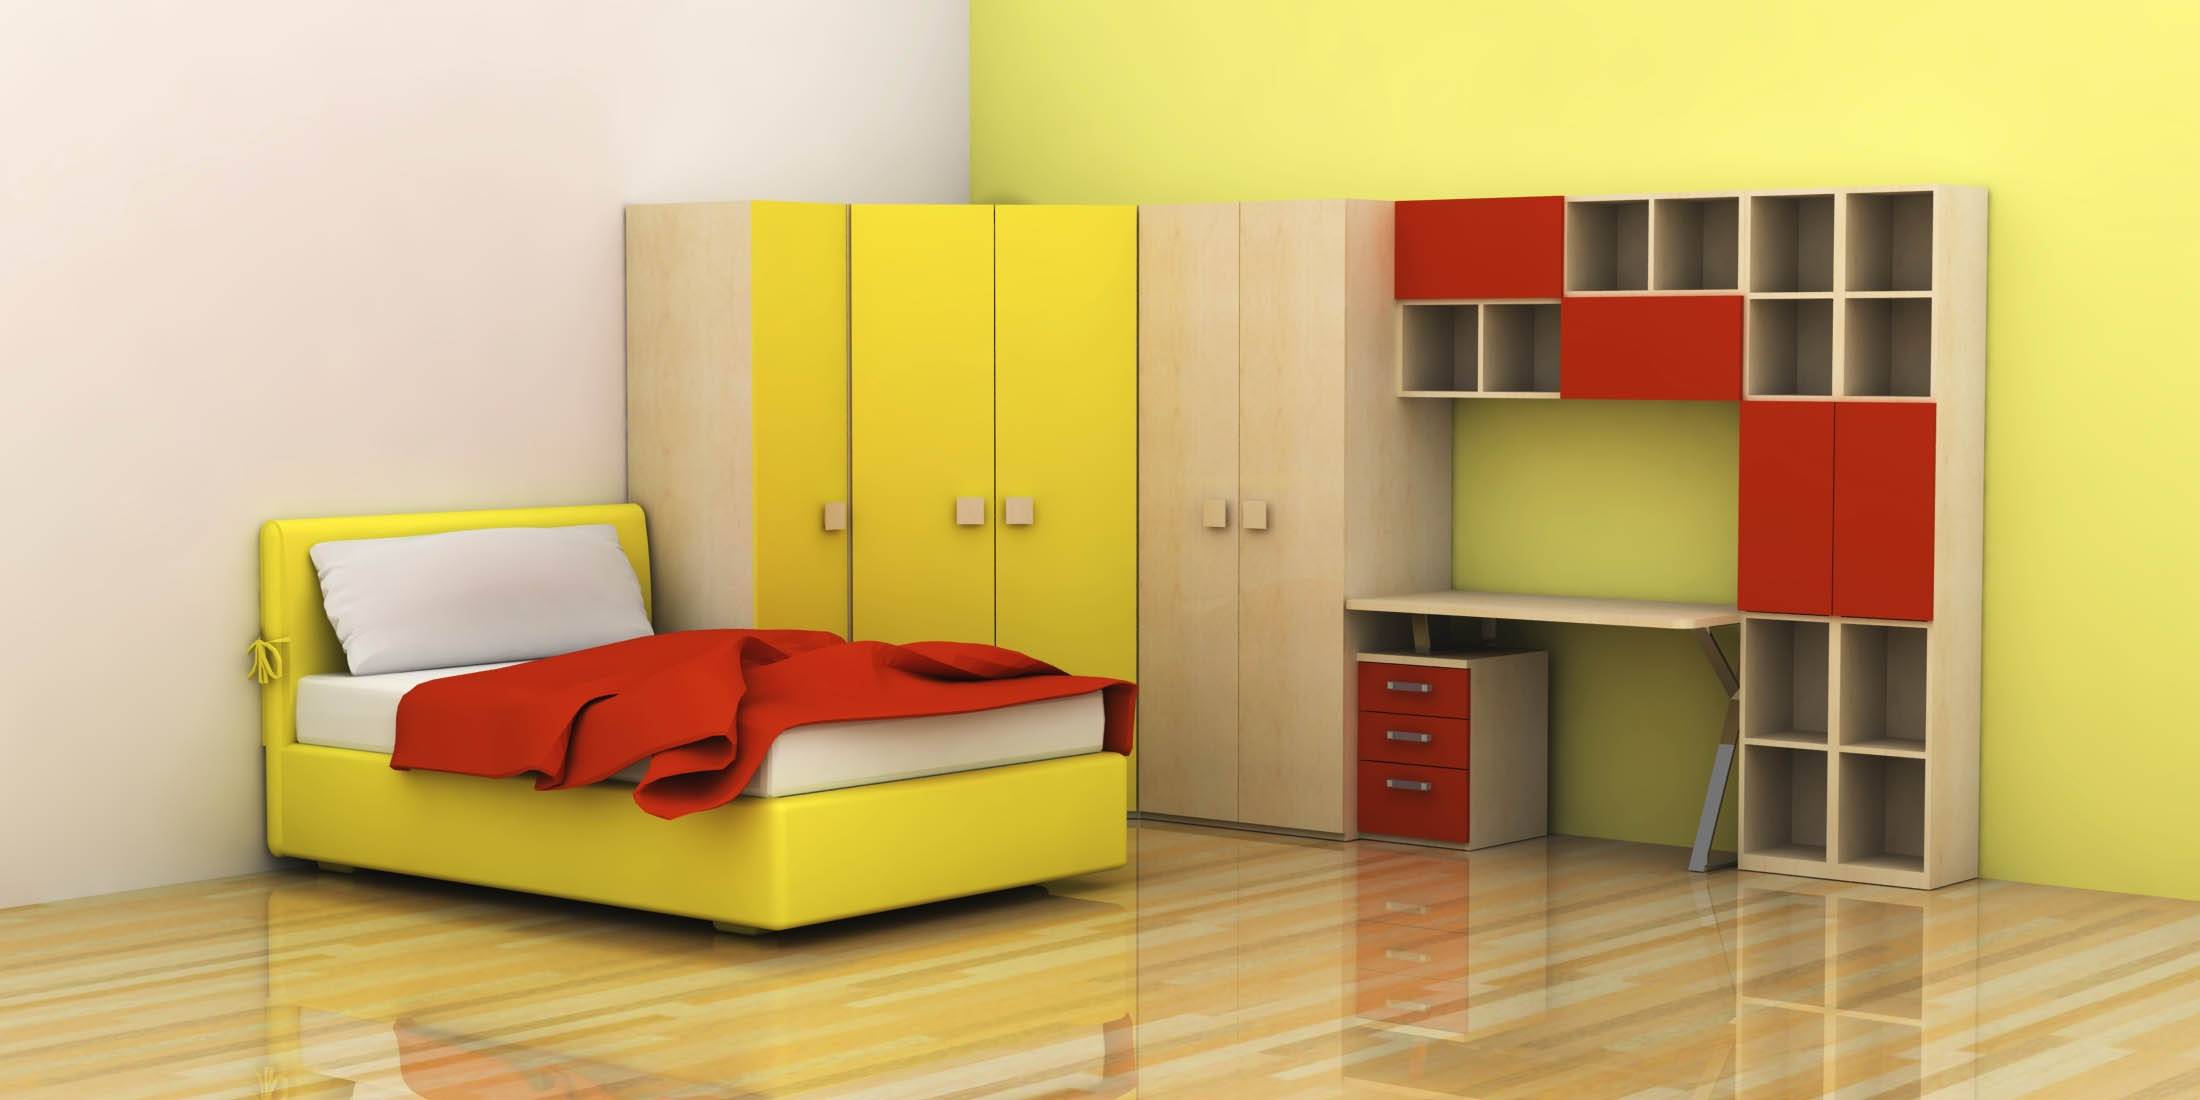 Bedroom Decor Creative Designs For Kids With Bedrooms Ideas Intended For Study Cupboard Designs (#2 of 15)